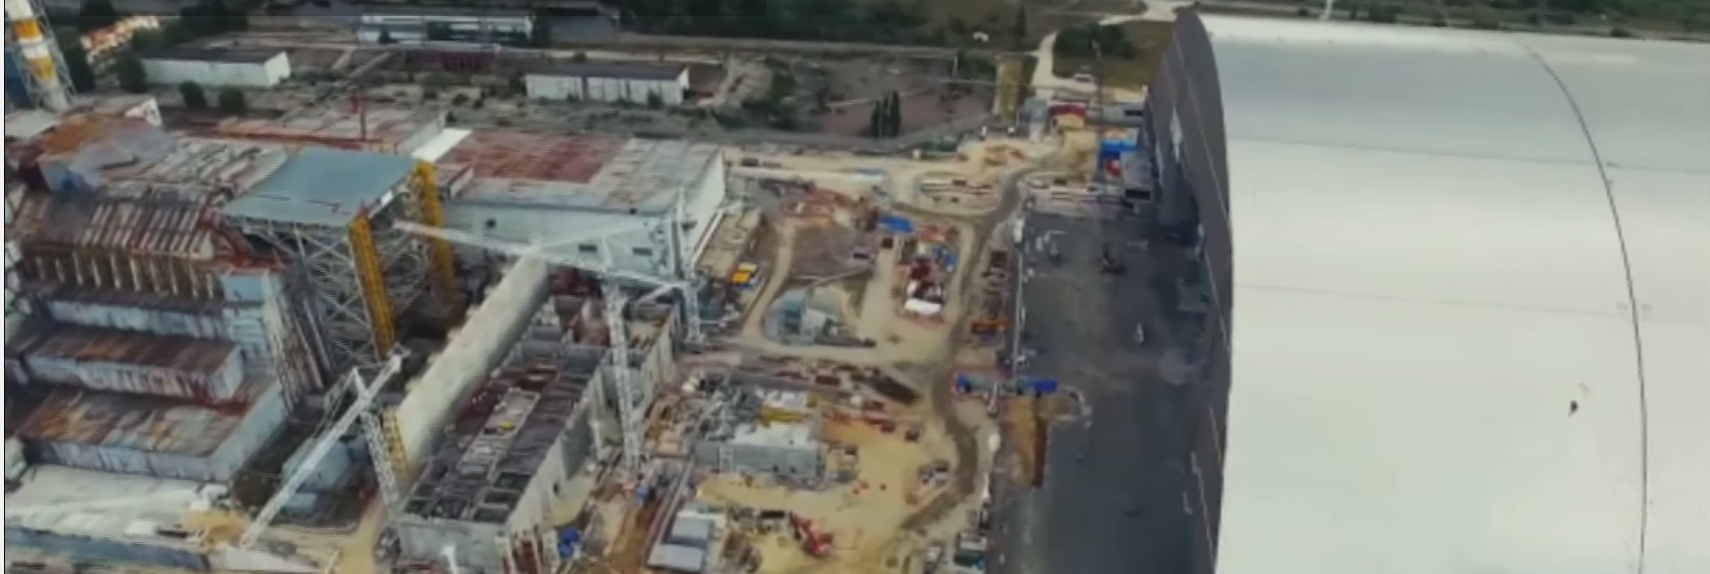 Eerie Drone Footage Shows New Chernobyl Sarcophagus Nearing Completion